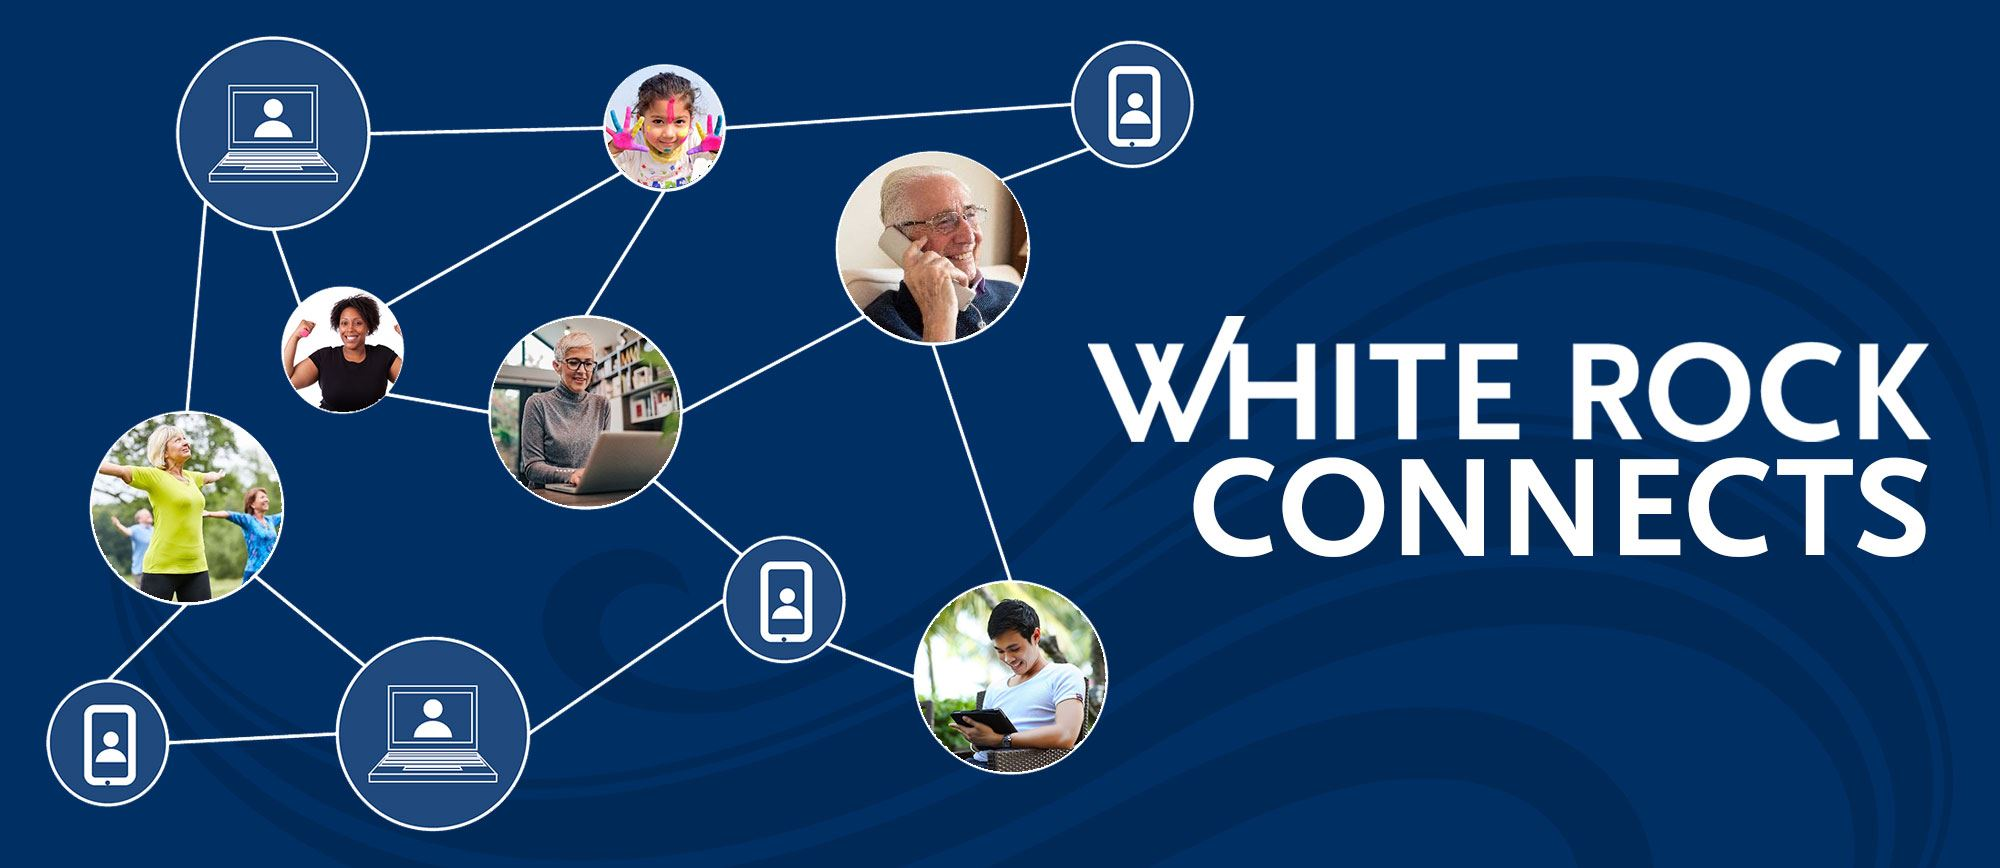 White Rock Connects - people connecting through the phone, computer, or physically distanced.